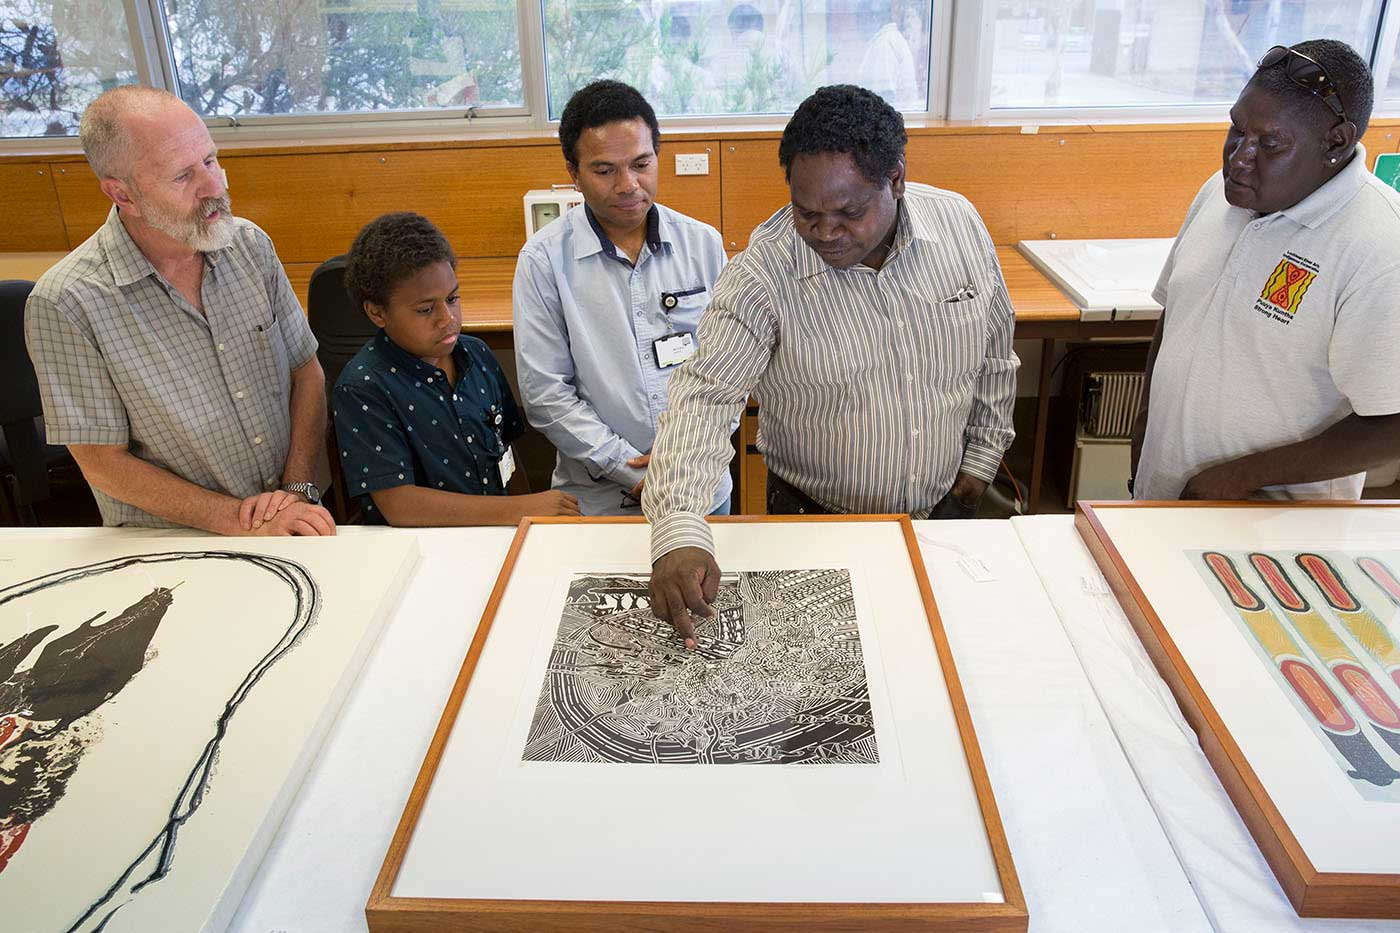 Four men and a child looking at a print on a table